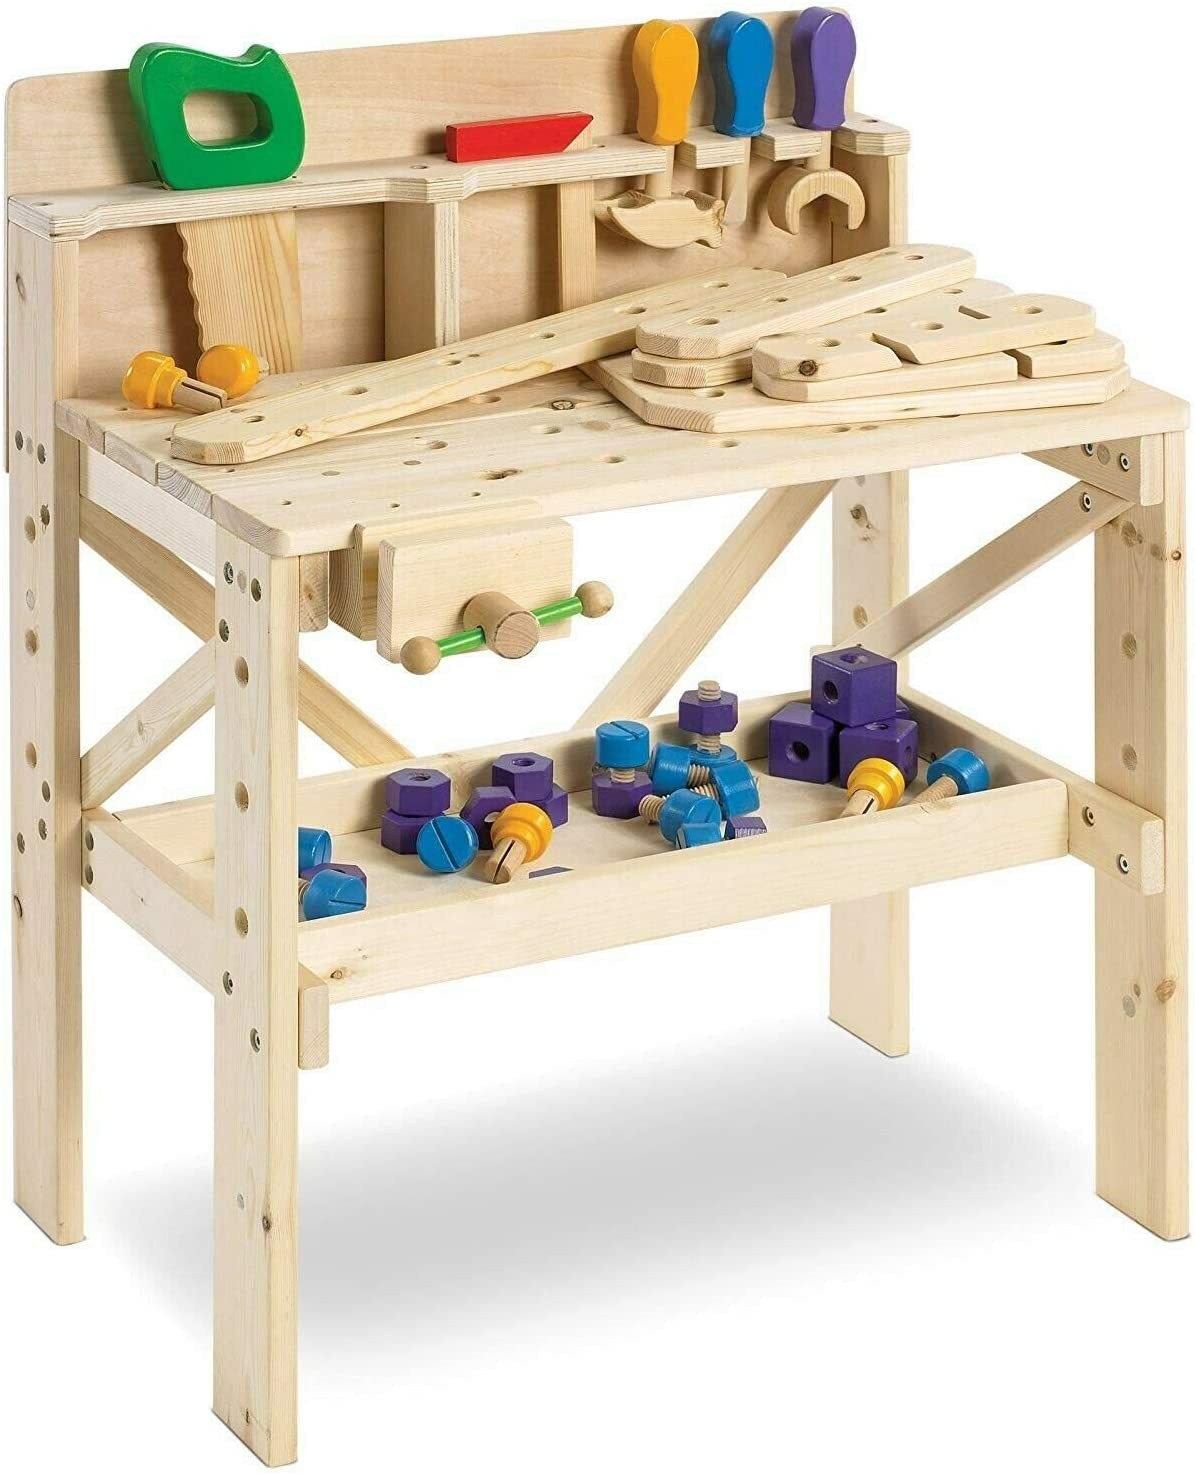 Top 14 Best Kids Tool Bench (2020 Reviews & Buying Guide) 1